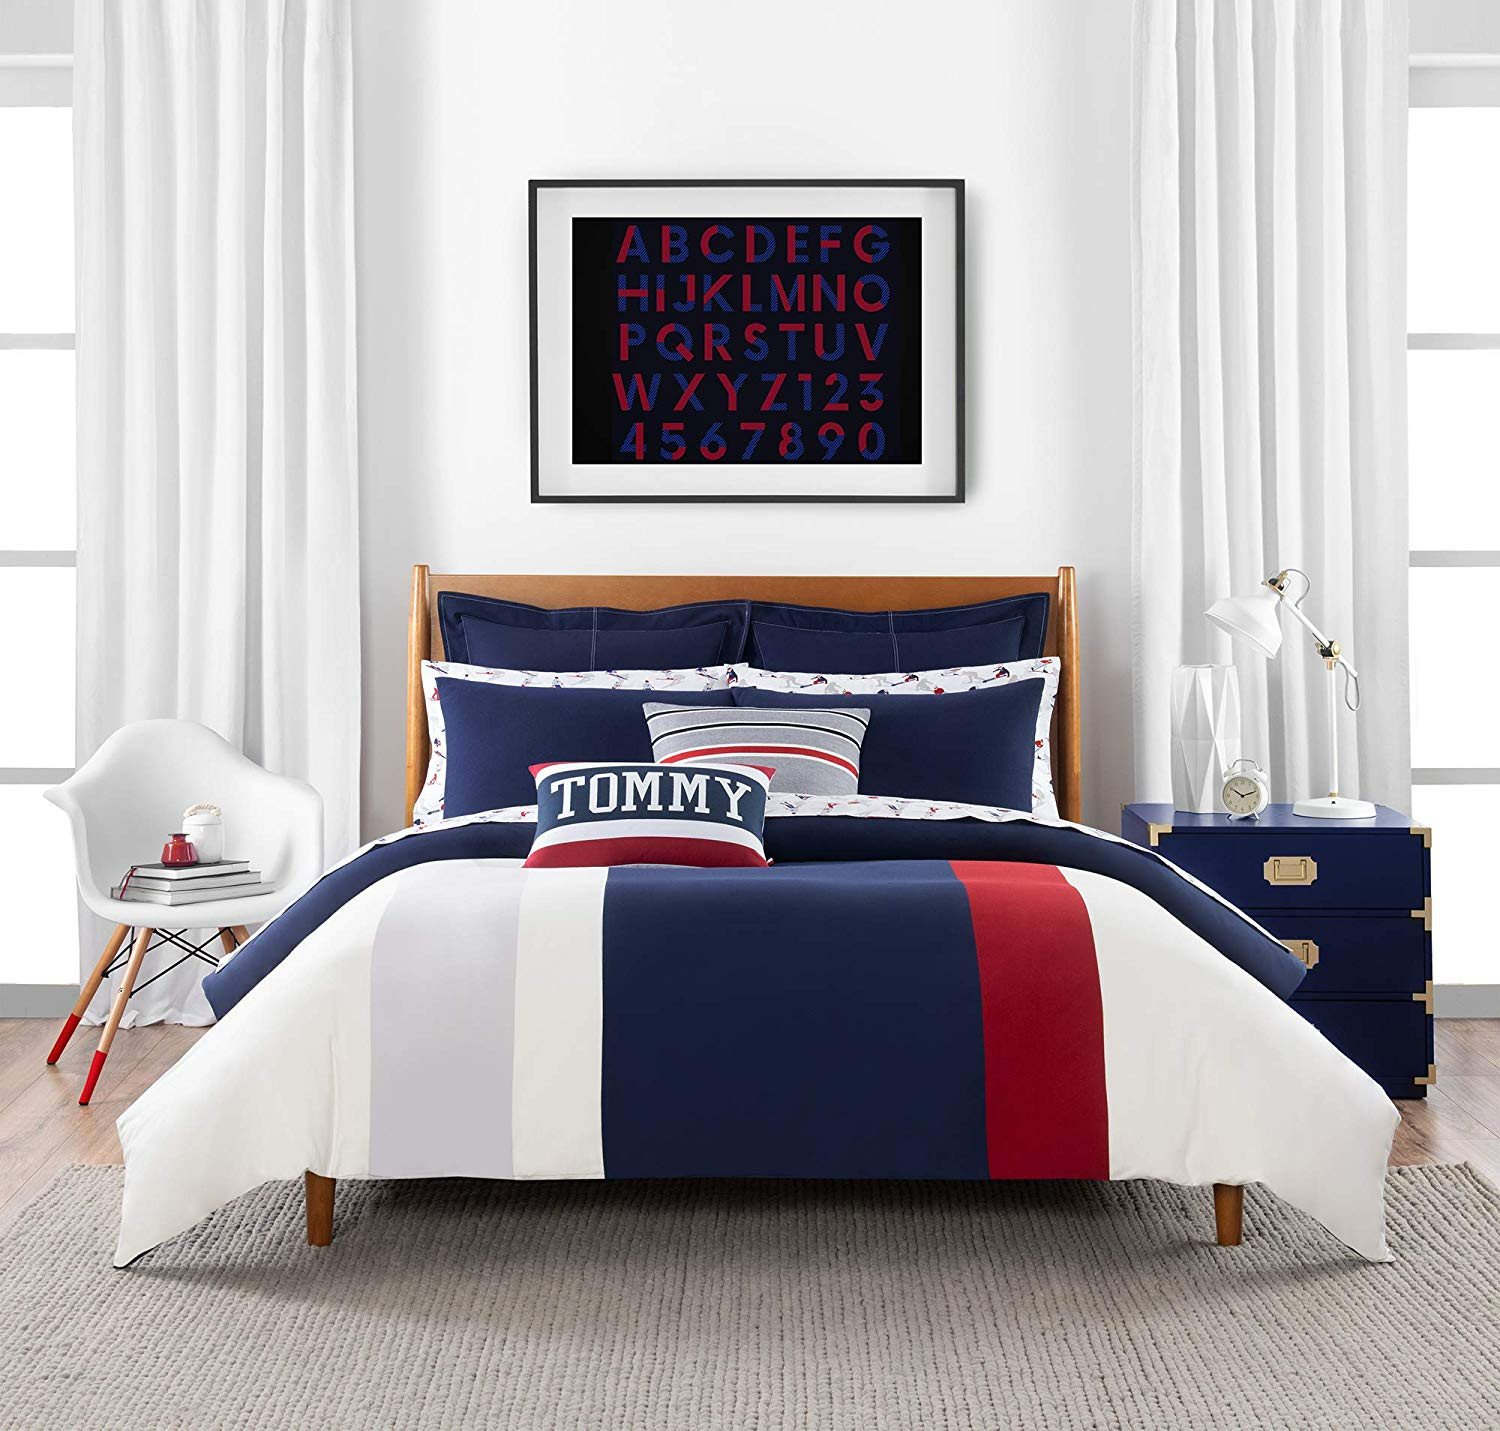 King Size Bedroom Suit New Amazon tommy Hilfiger Clash Of 85 Stripe Bedding